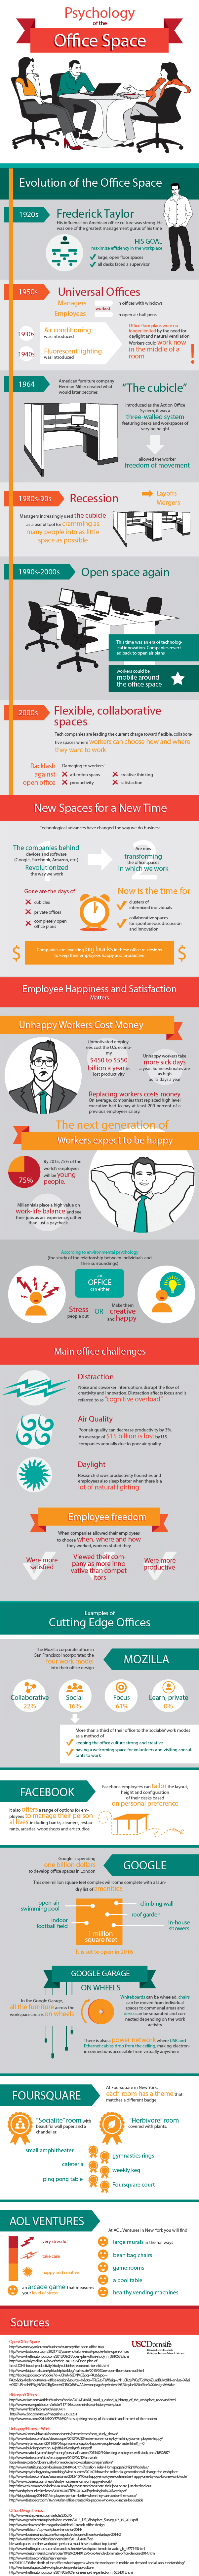 The Psychology Of Different Office Spaces